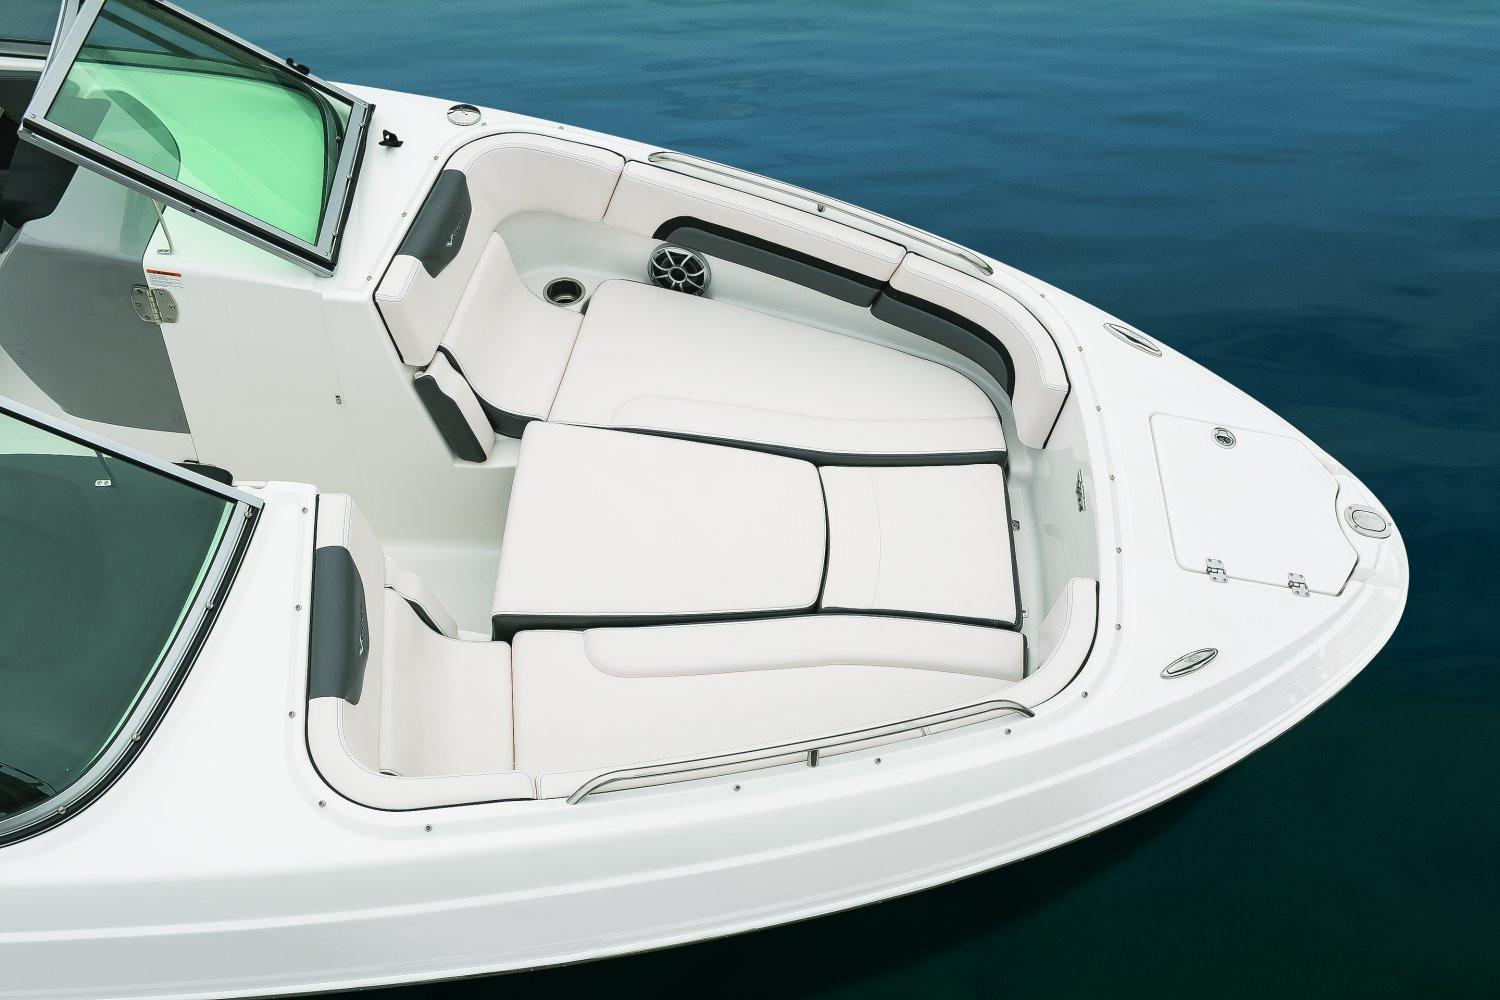 2018 Chaparral Vortex 2430 VR in Hermitage, Pennsylvania